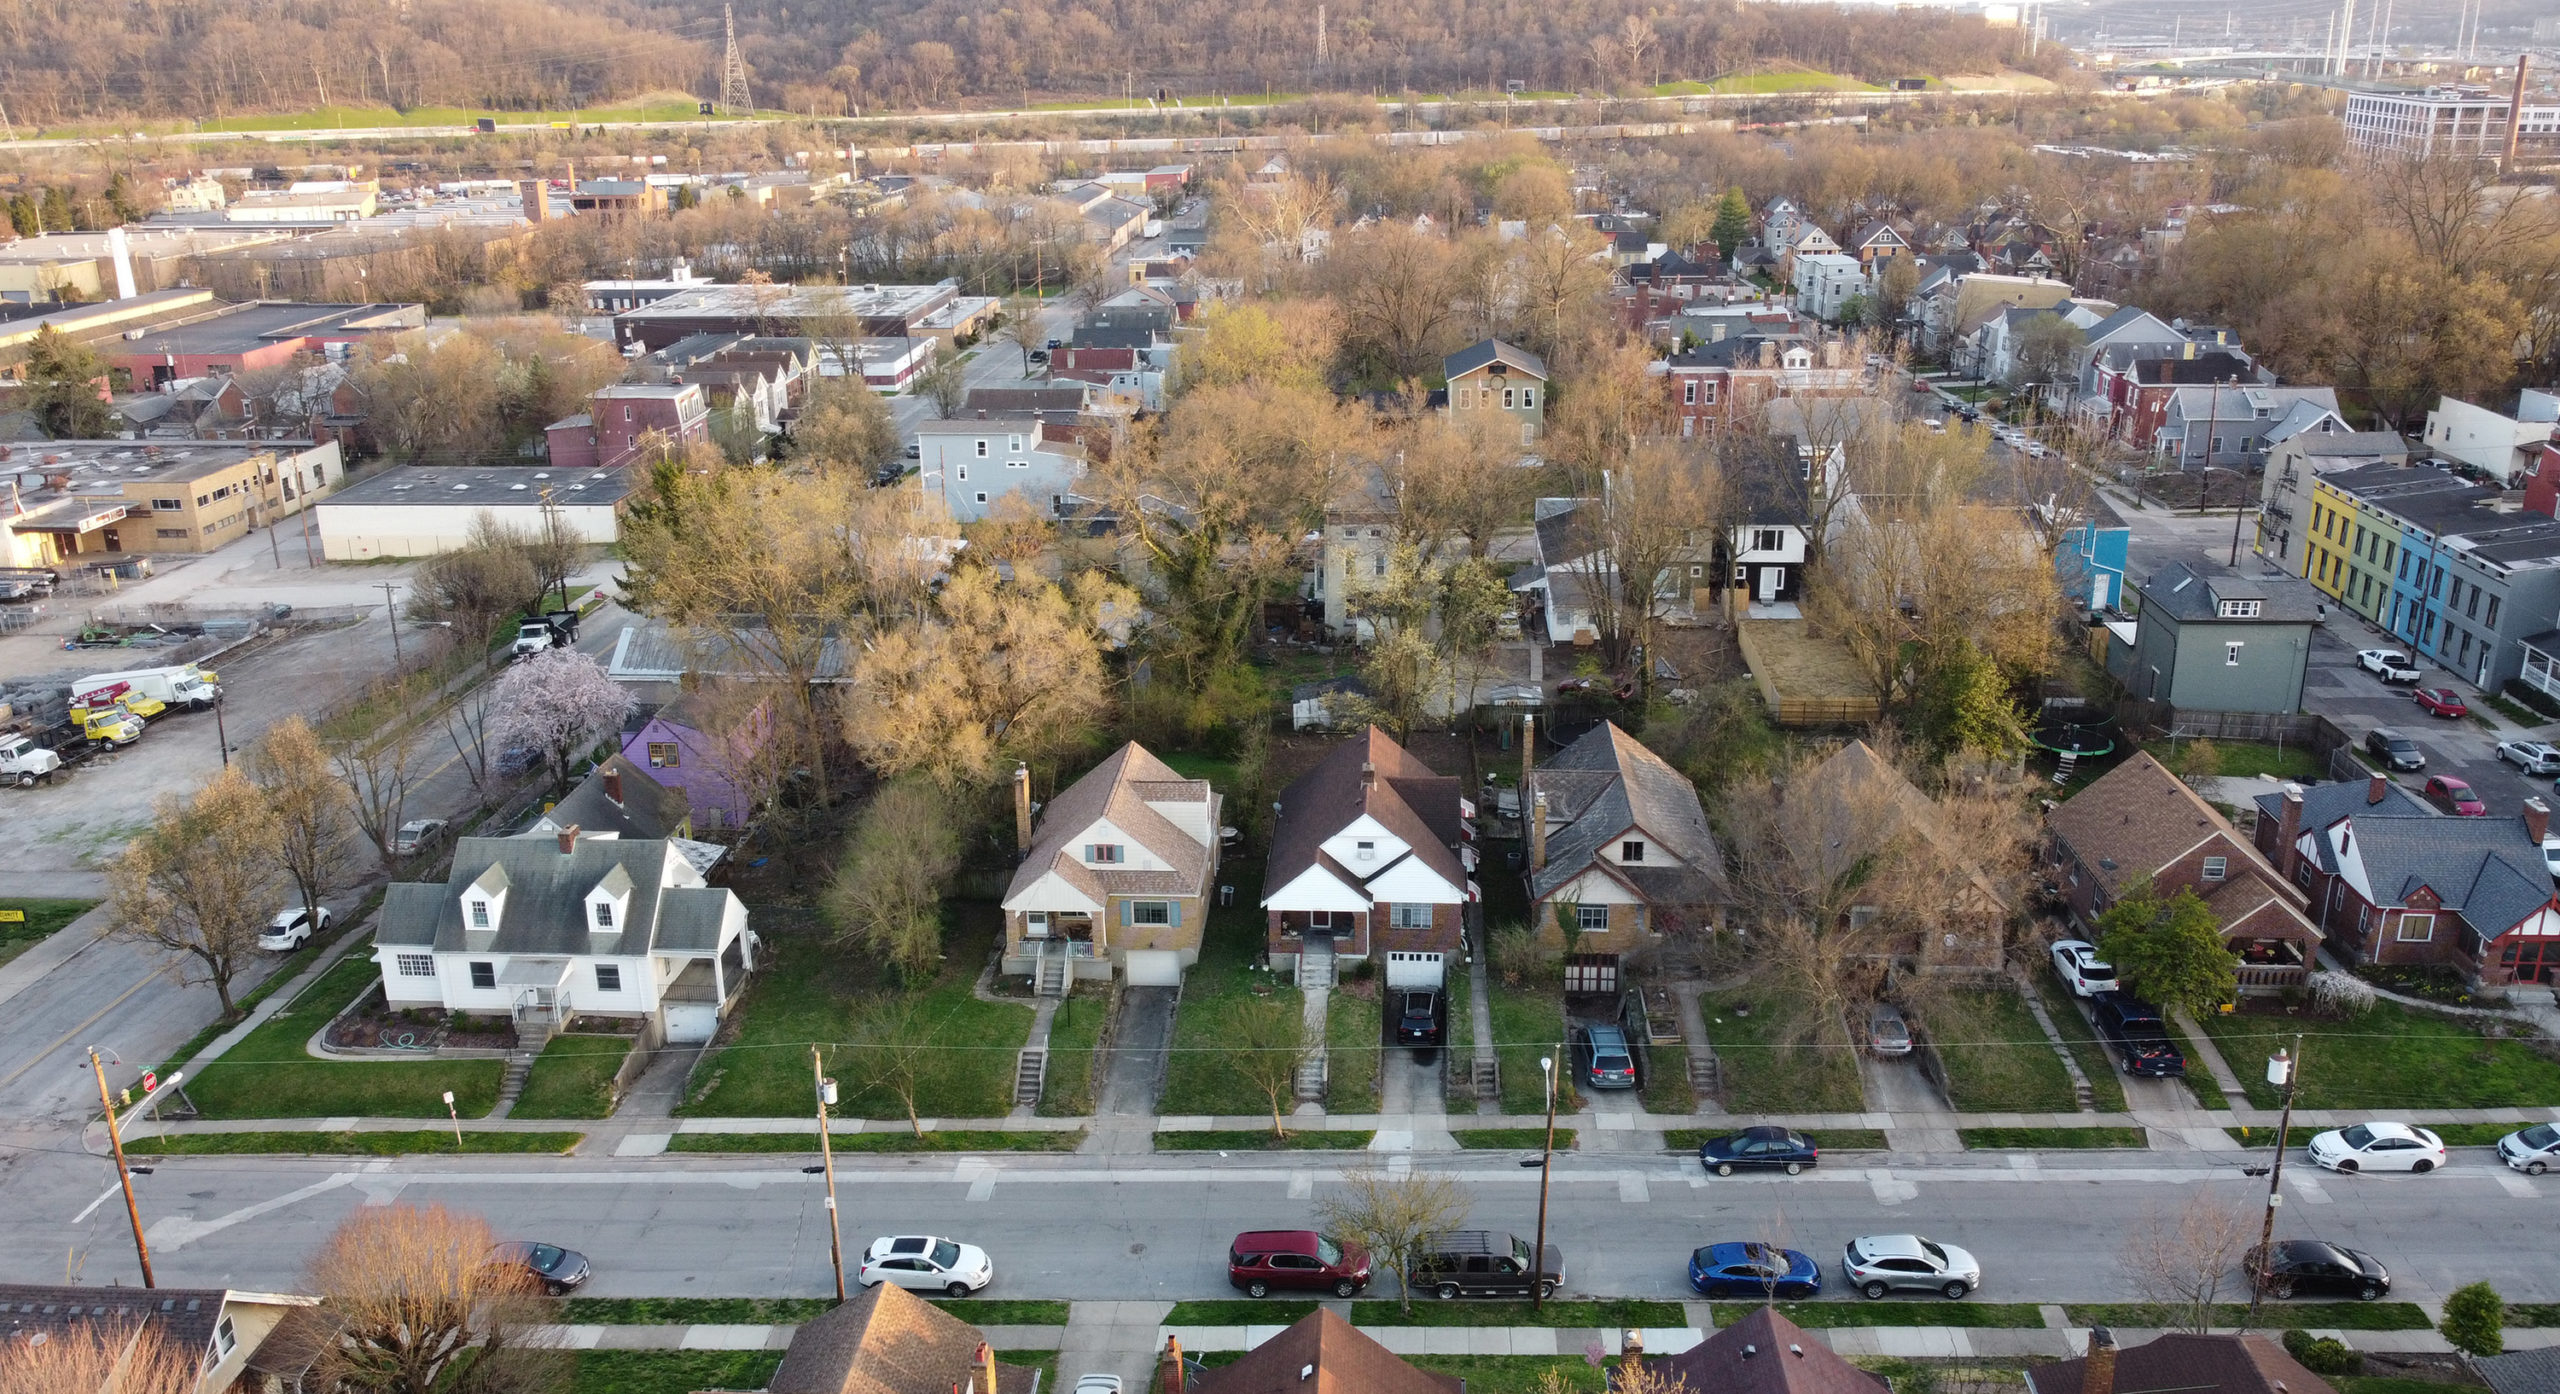 Quaint neighborhood in springtime, captured by drone